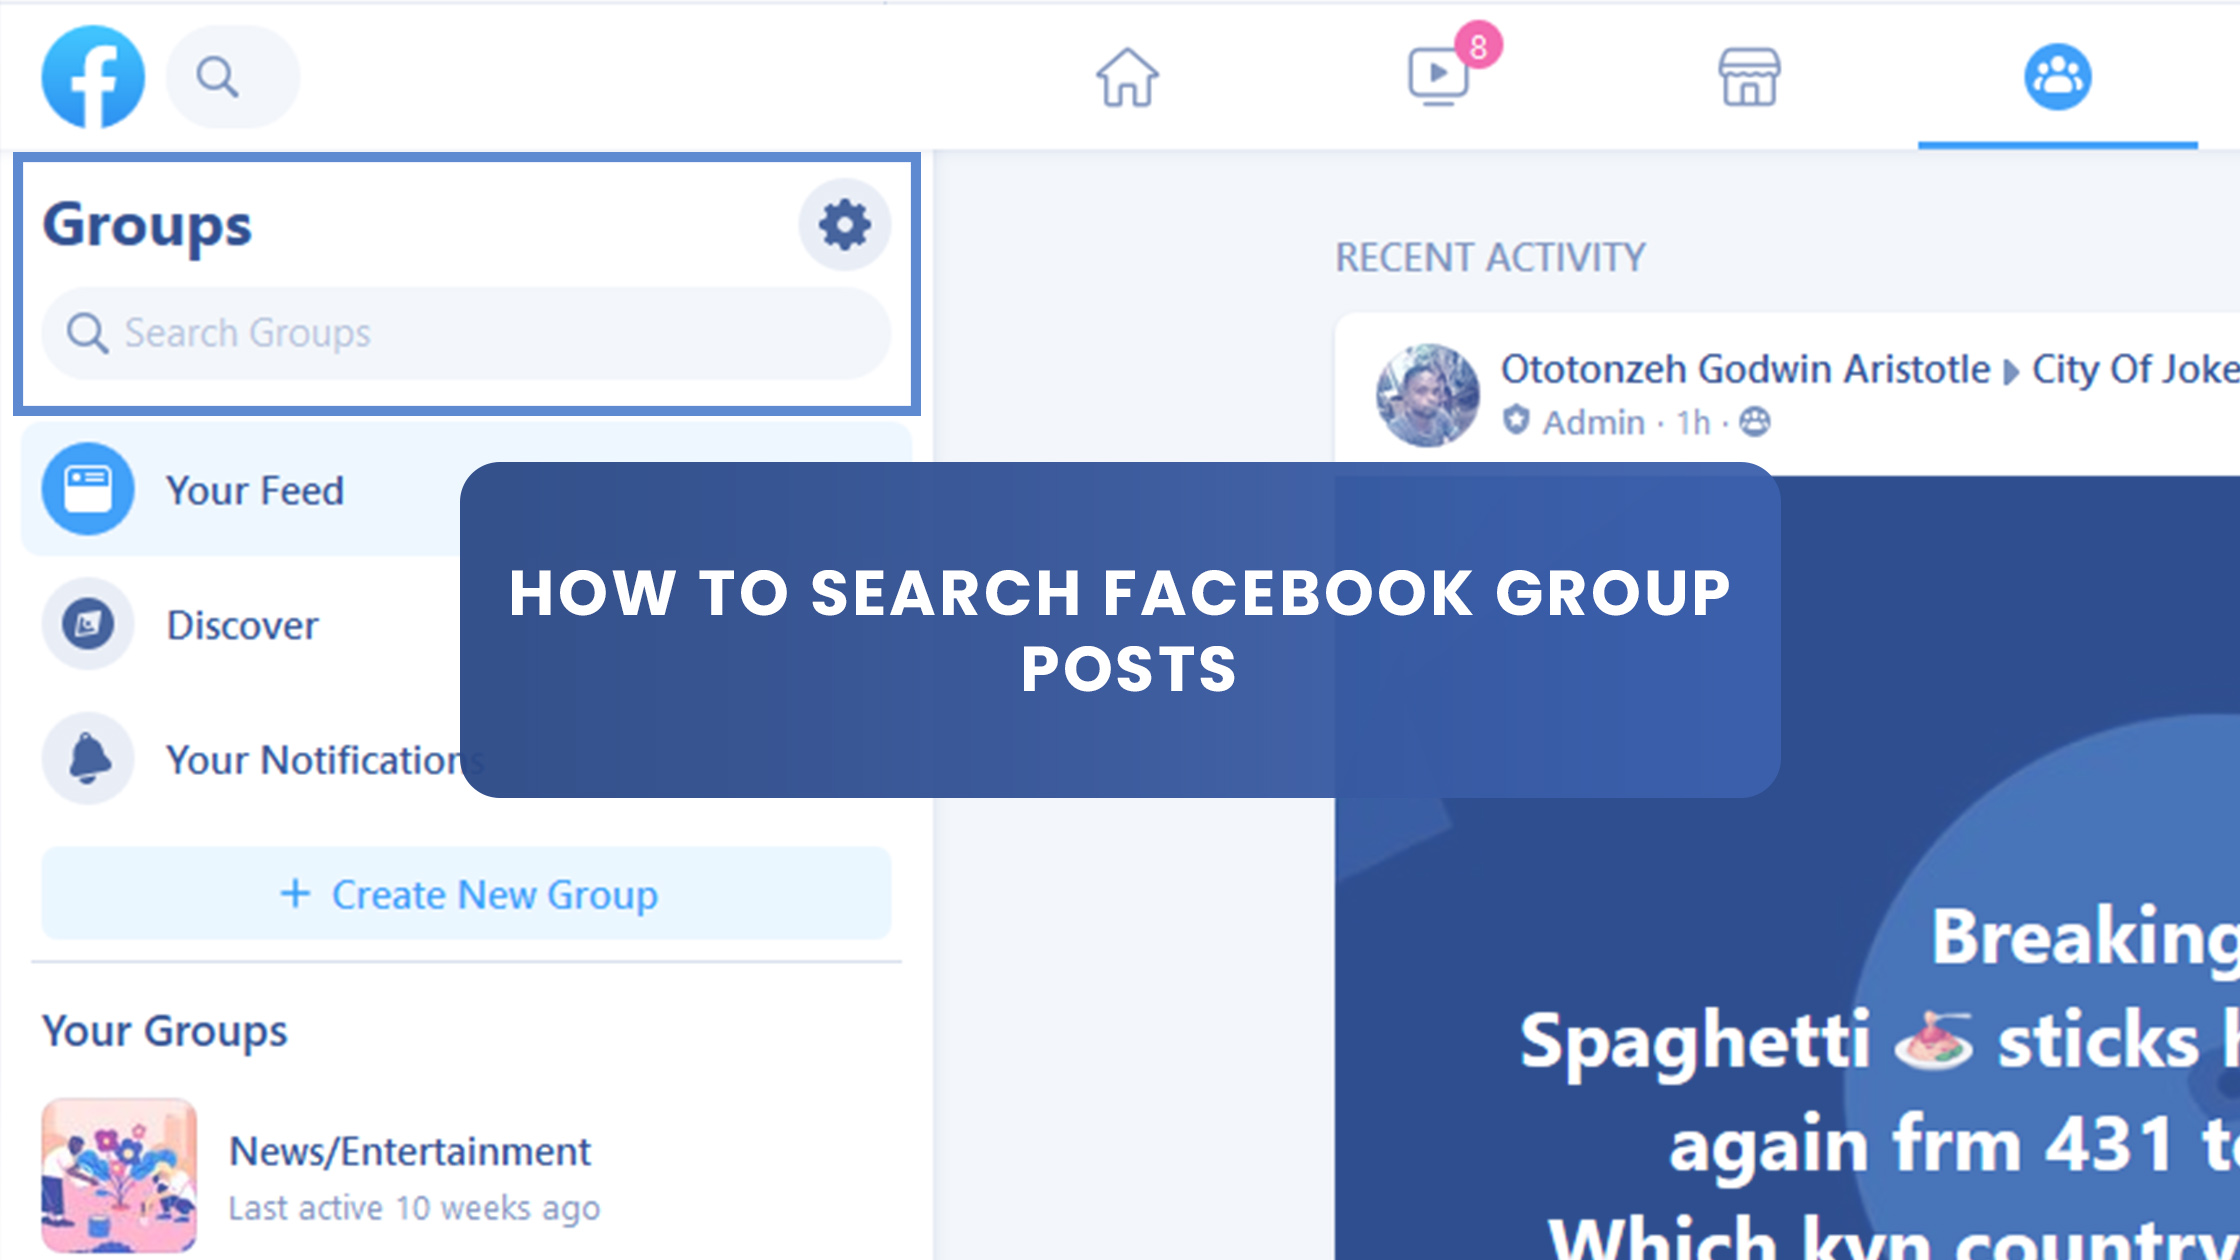 How to Search Facebook Group Posts